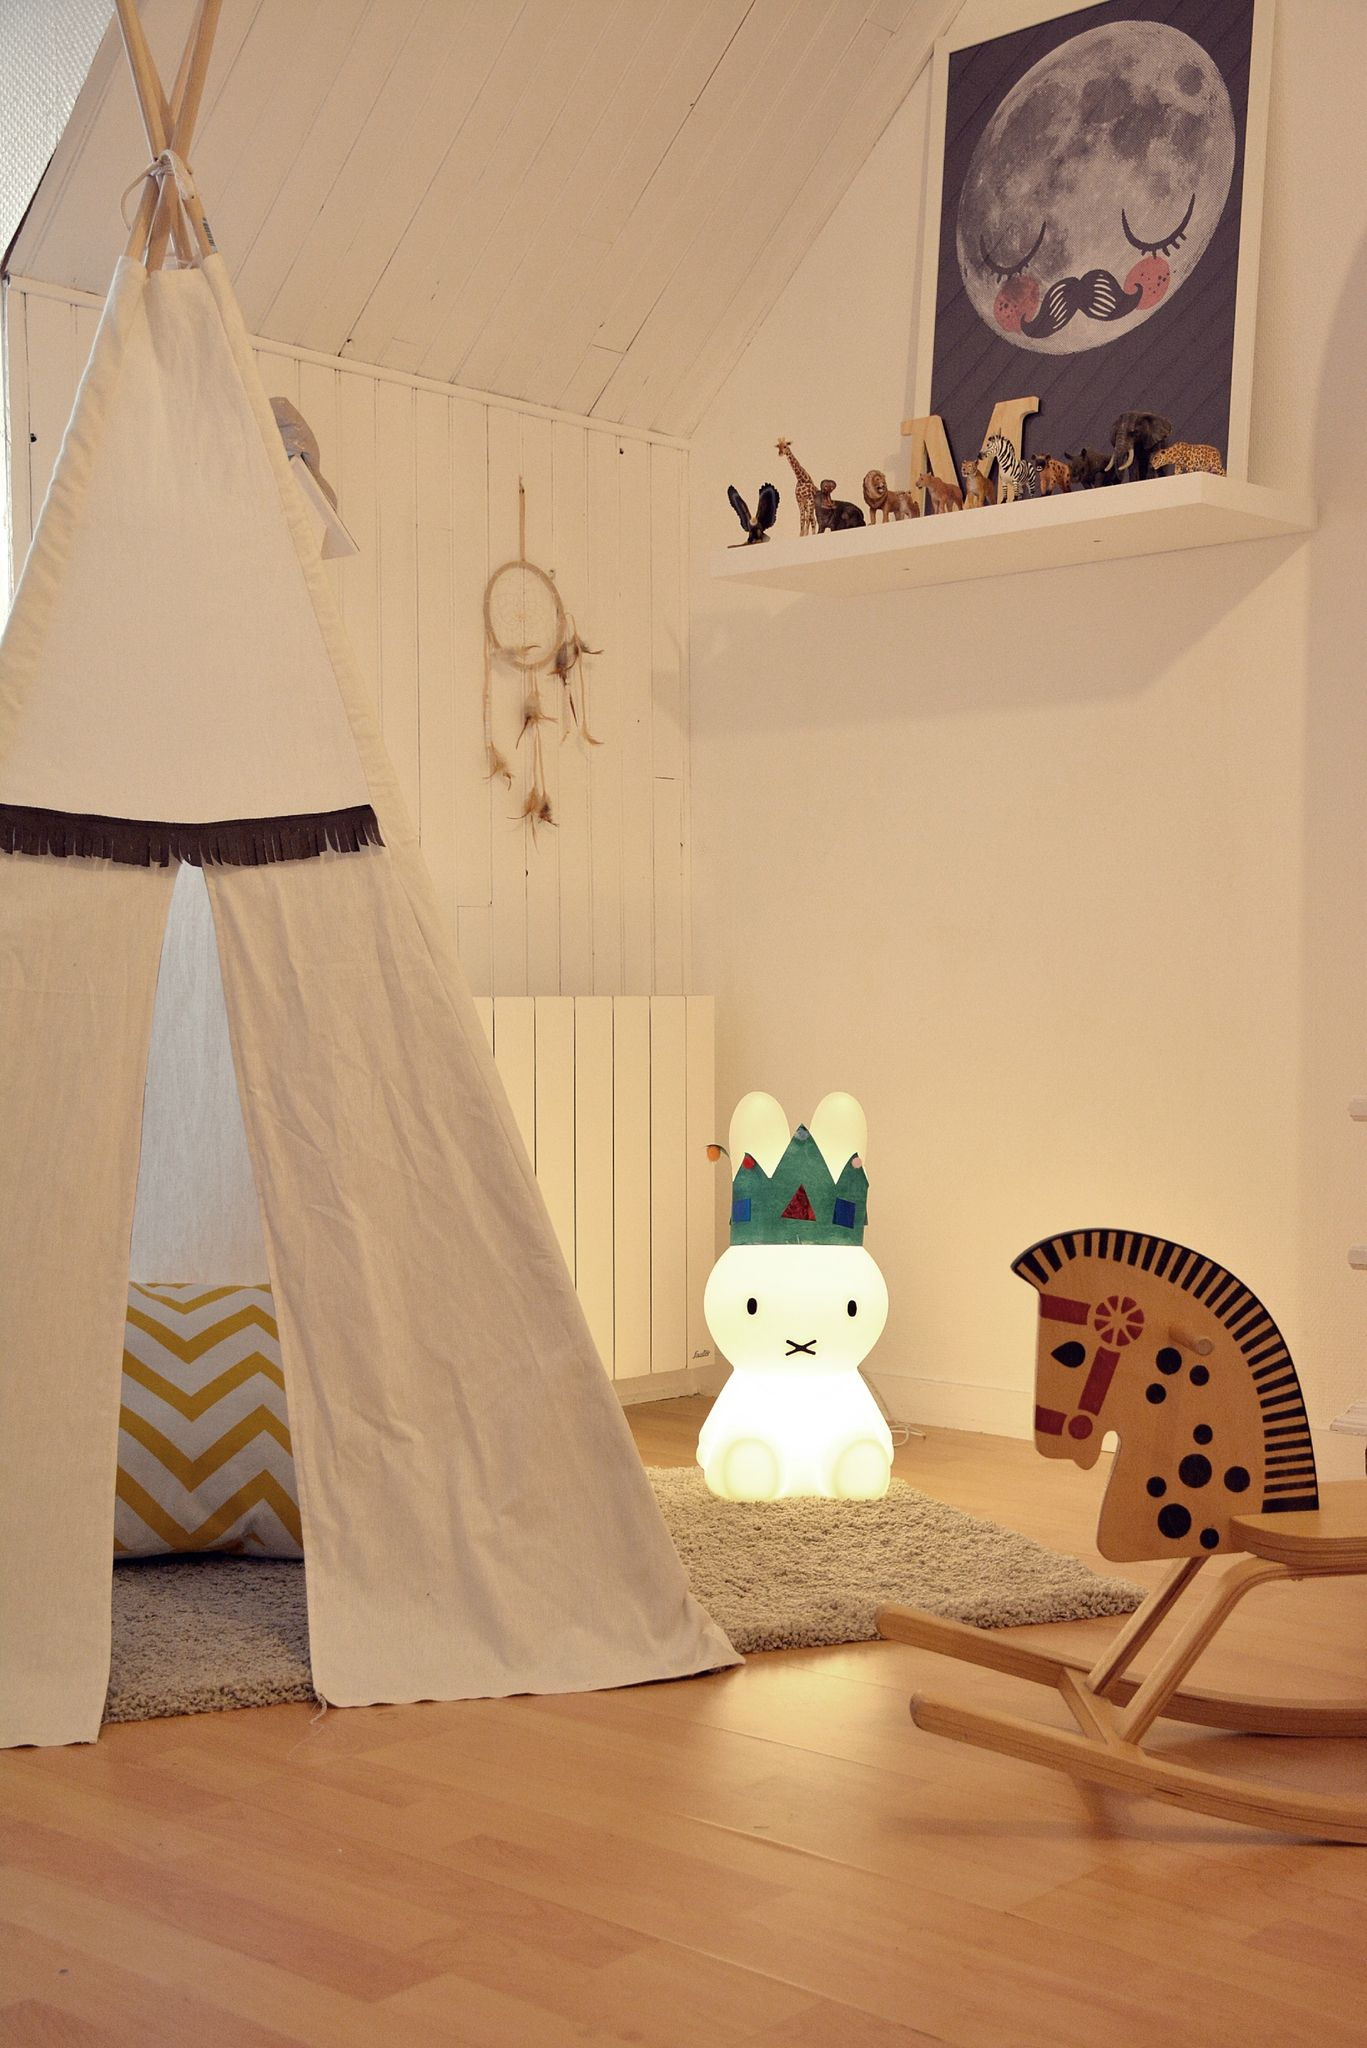 fabriquer soi m me un tipi chambre d 39 enfants pinterest. Black Bedroom Furniture Sets. Home Design Ideas